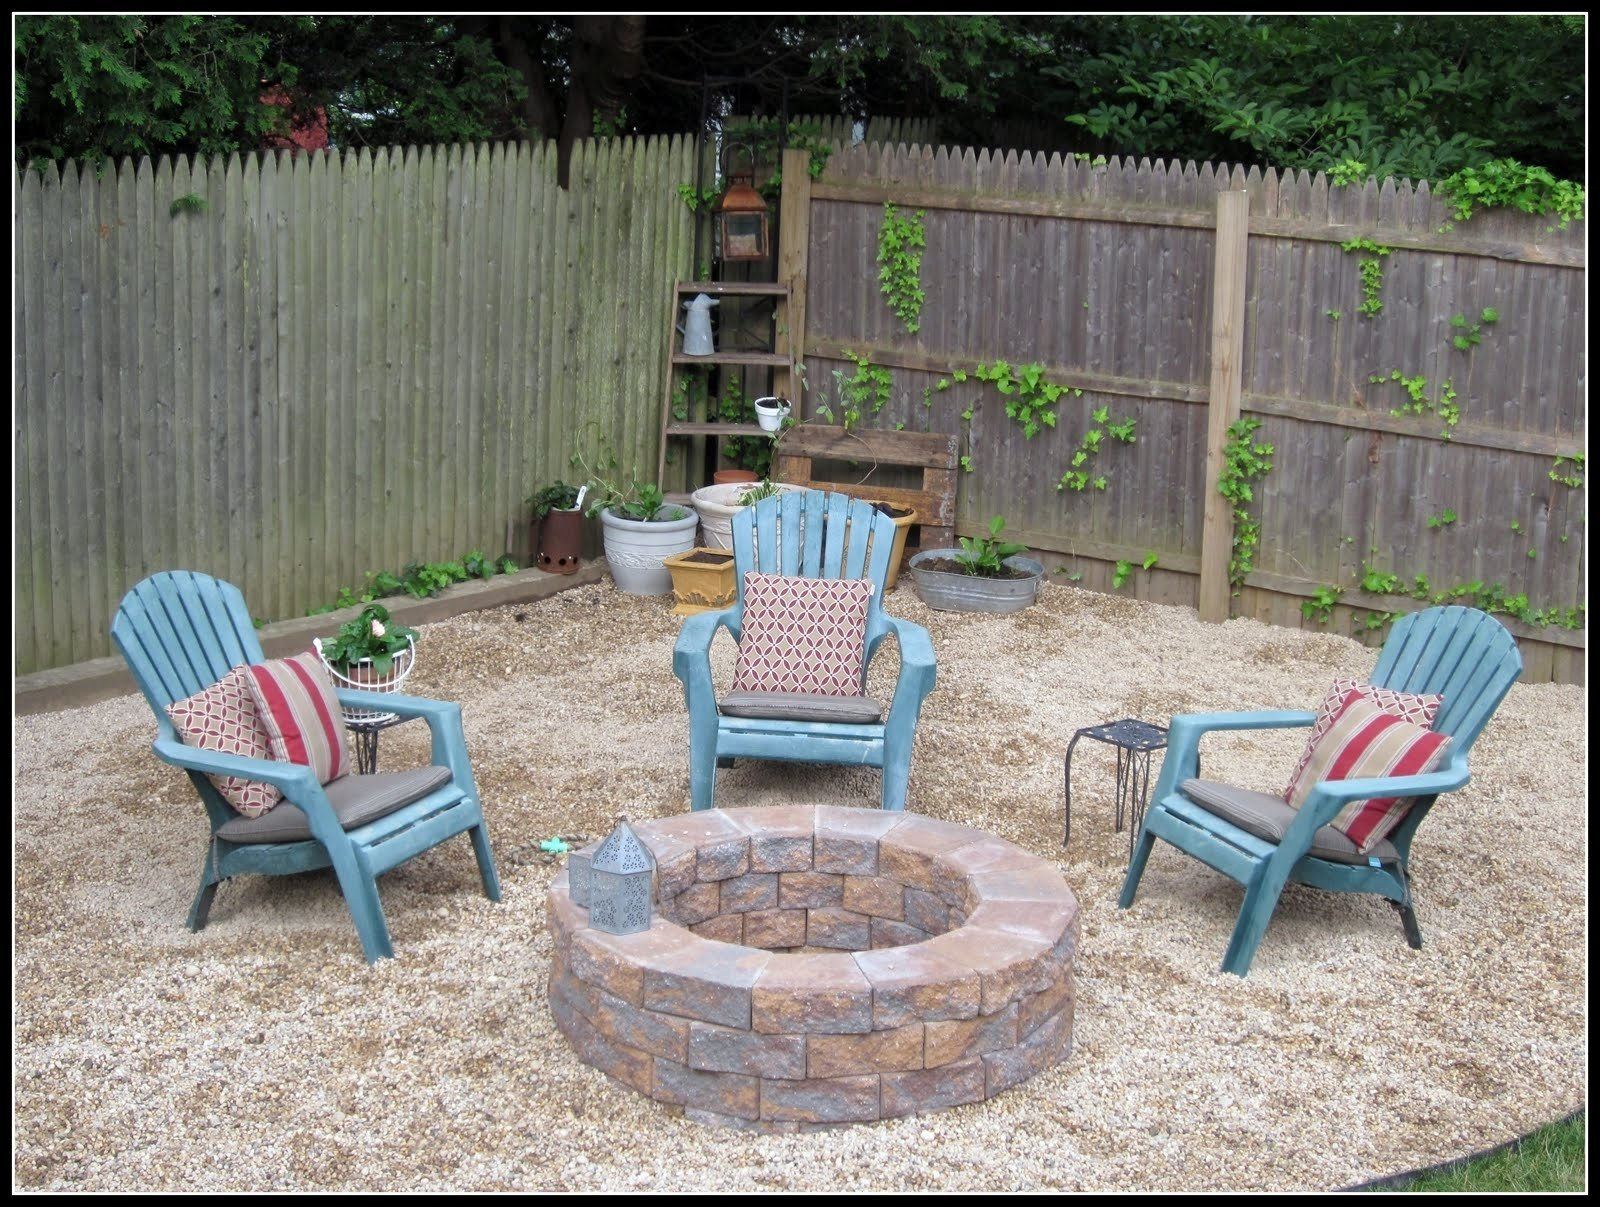 10 Spectacular Do It Yourself Fire Pit Ideas 11 of the best diy fire pit ideas for your backyard diy for life 2021